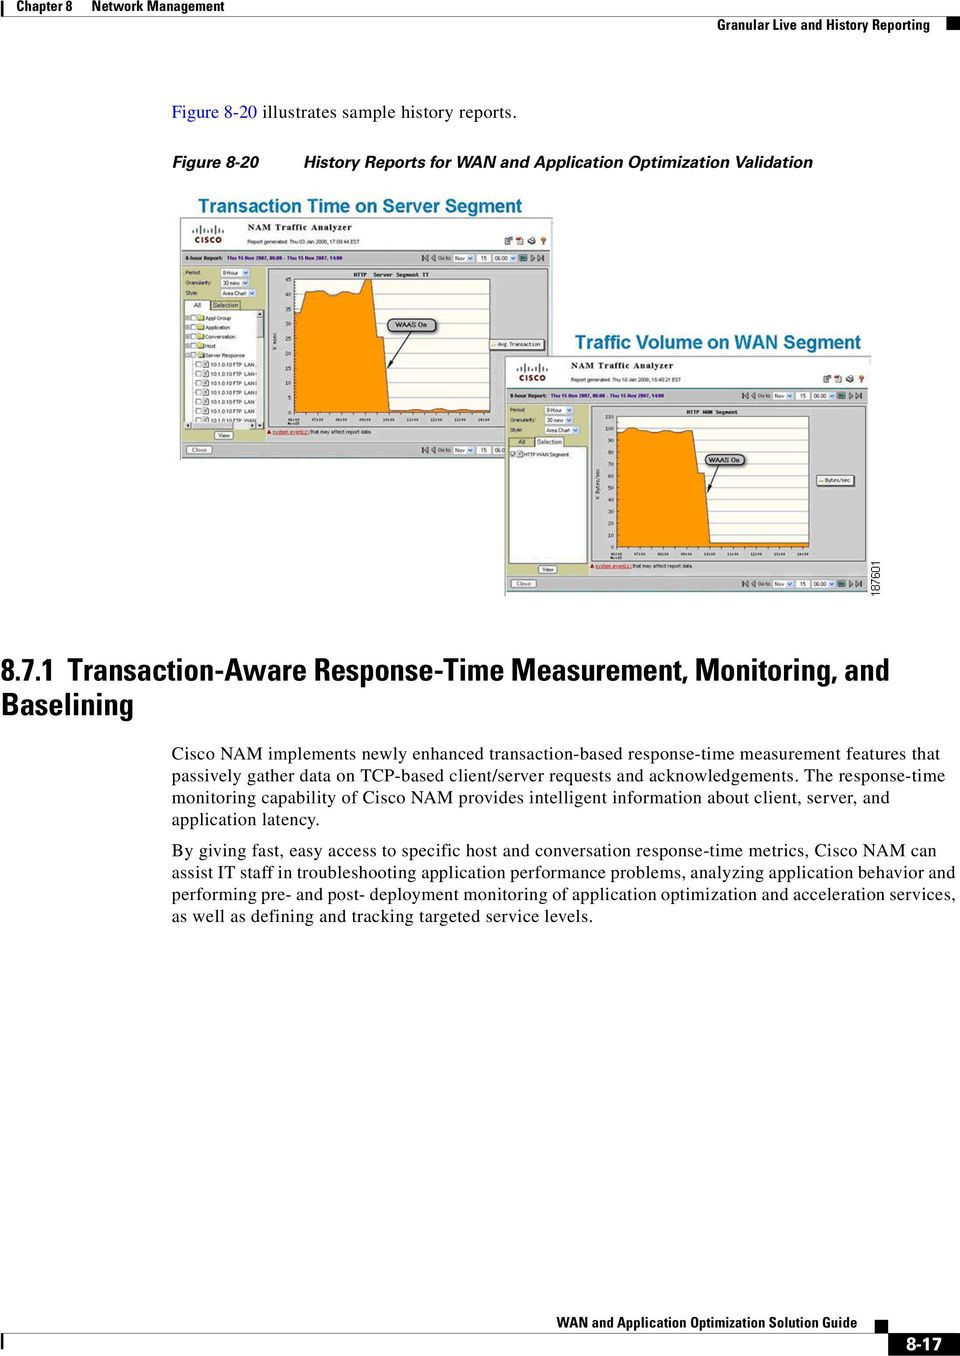 TCP-based client/server requests and acknowledgements. The response-time monitoring capability of Cisco NAM provides intelligent information about client, server, and application latency.